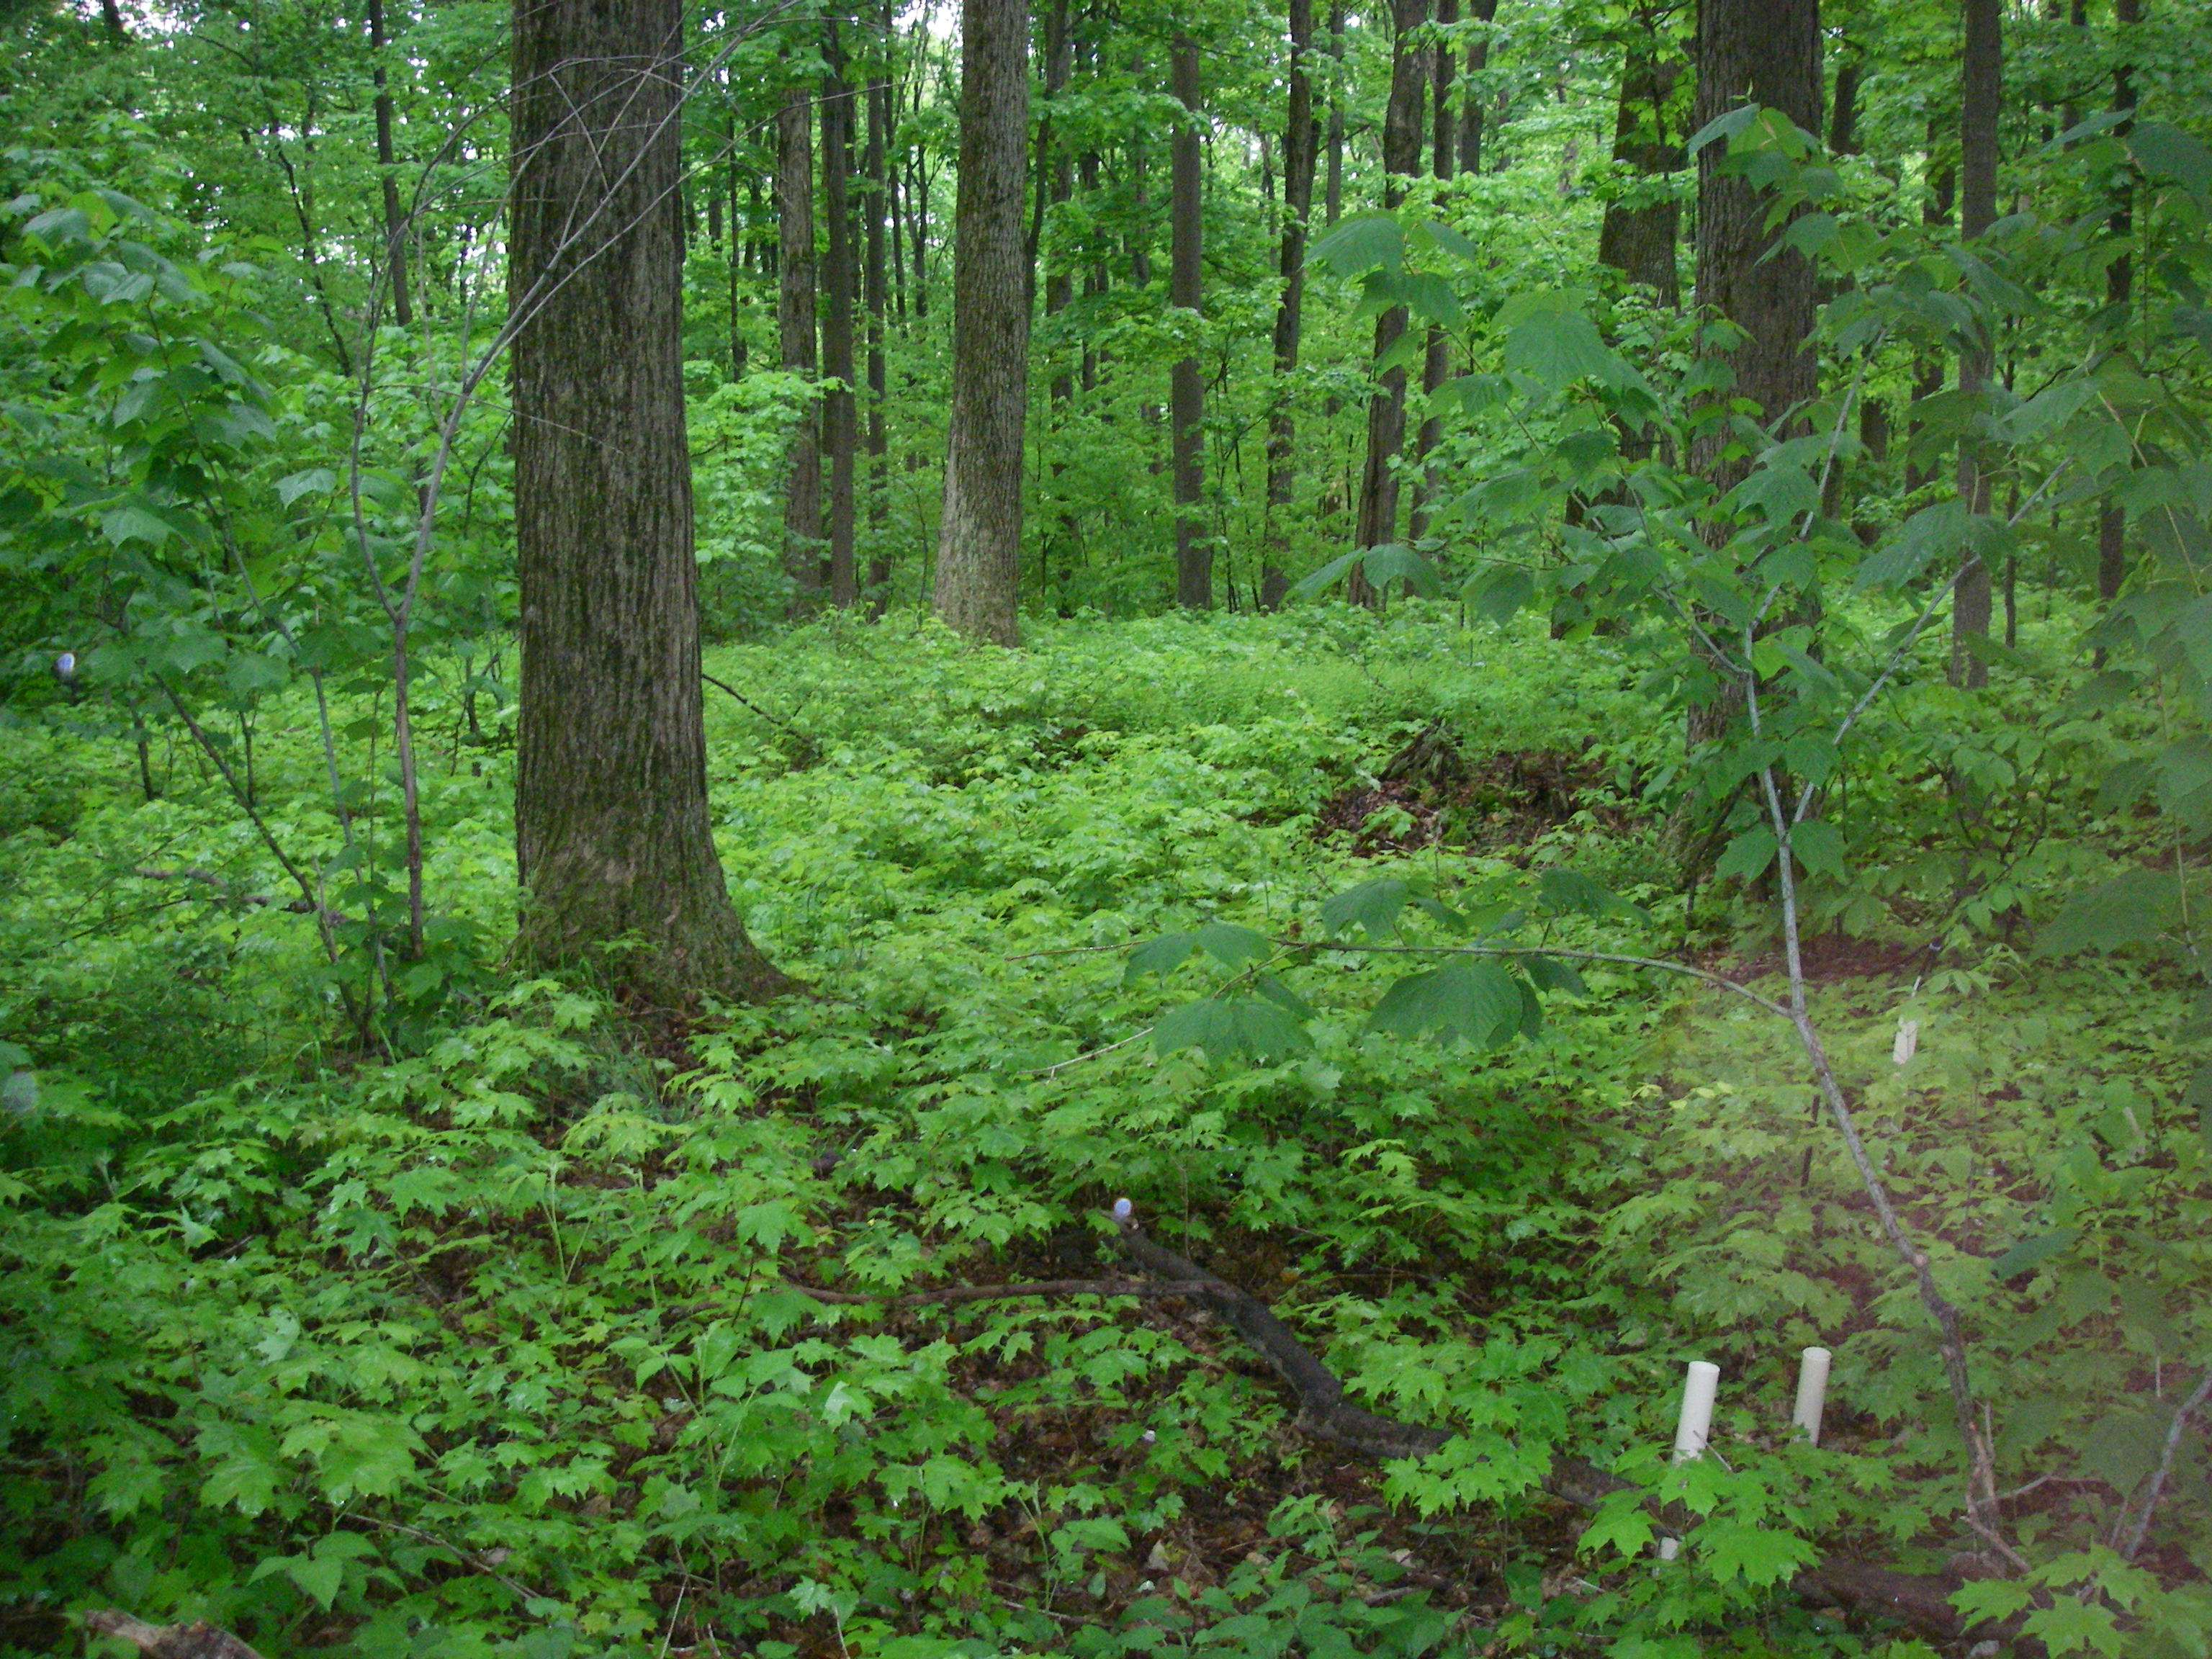 Sugar maple mixed herb layer in C2 22May08a.JPG